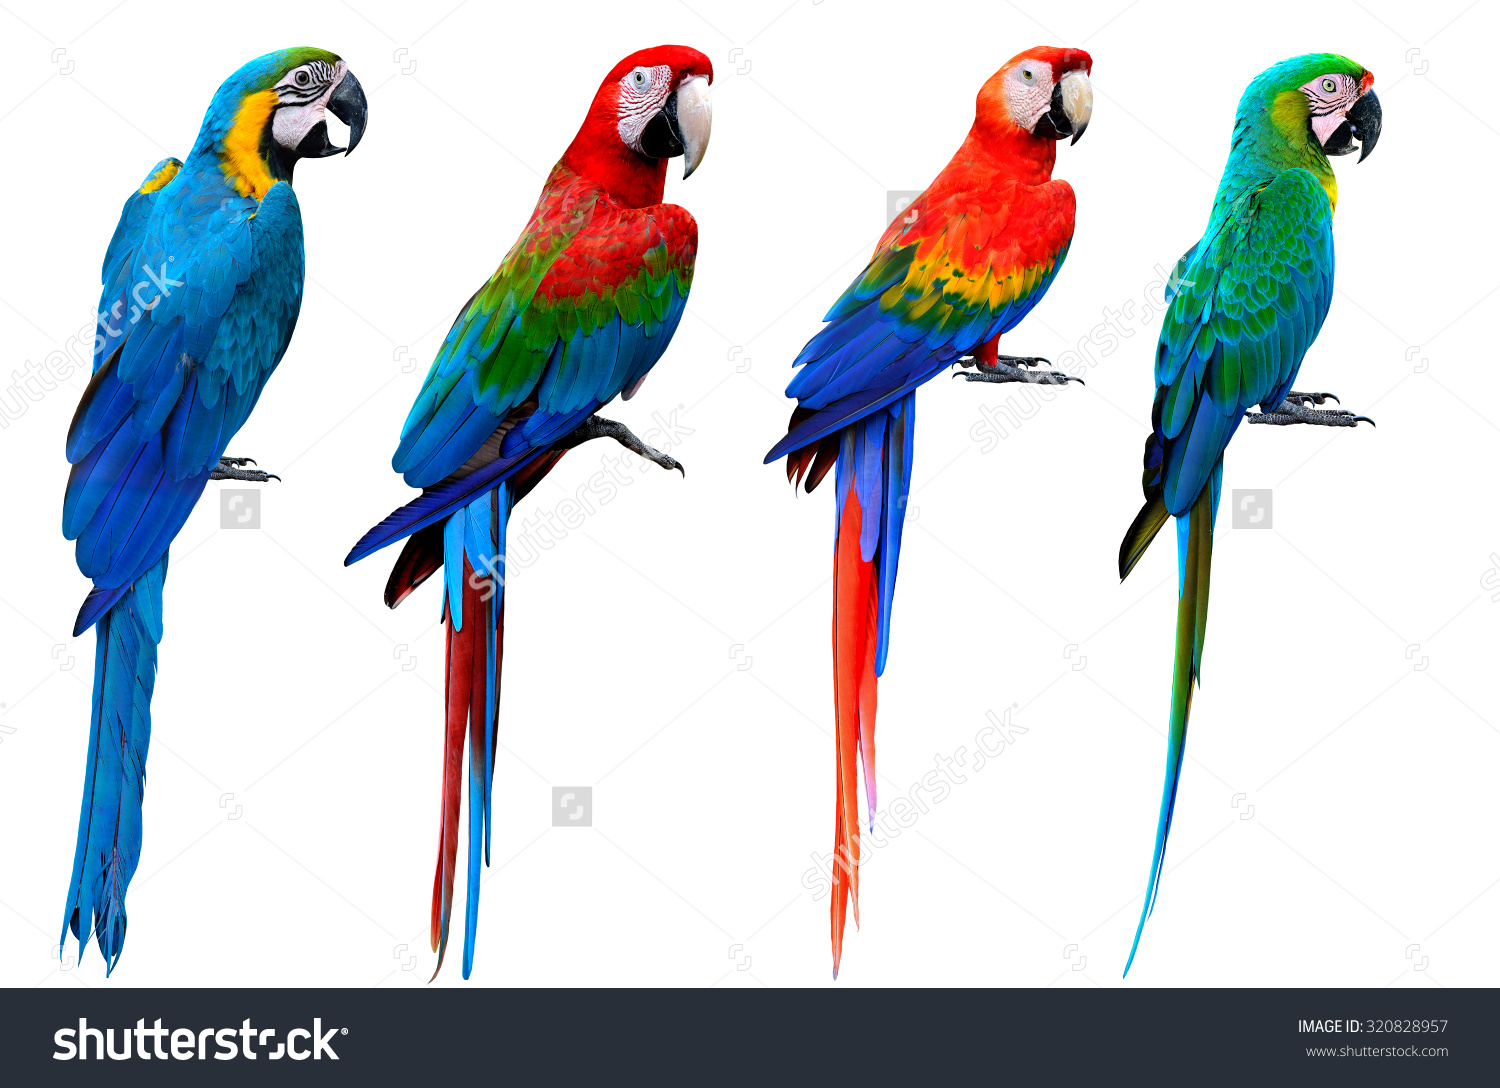 Red-and-green Macaw clipart #8, Download drawings